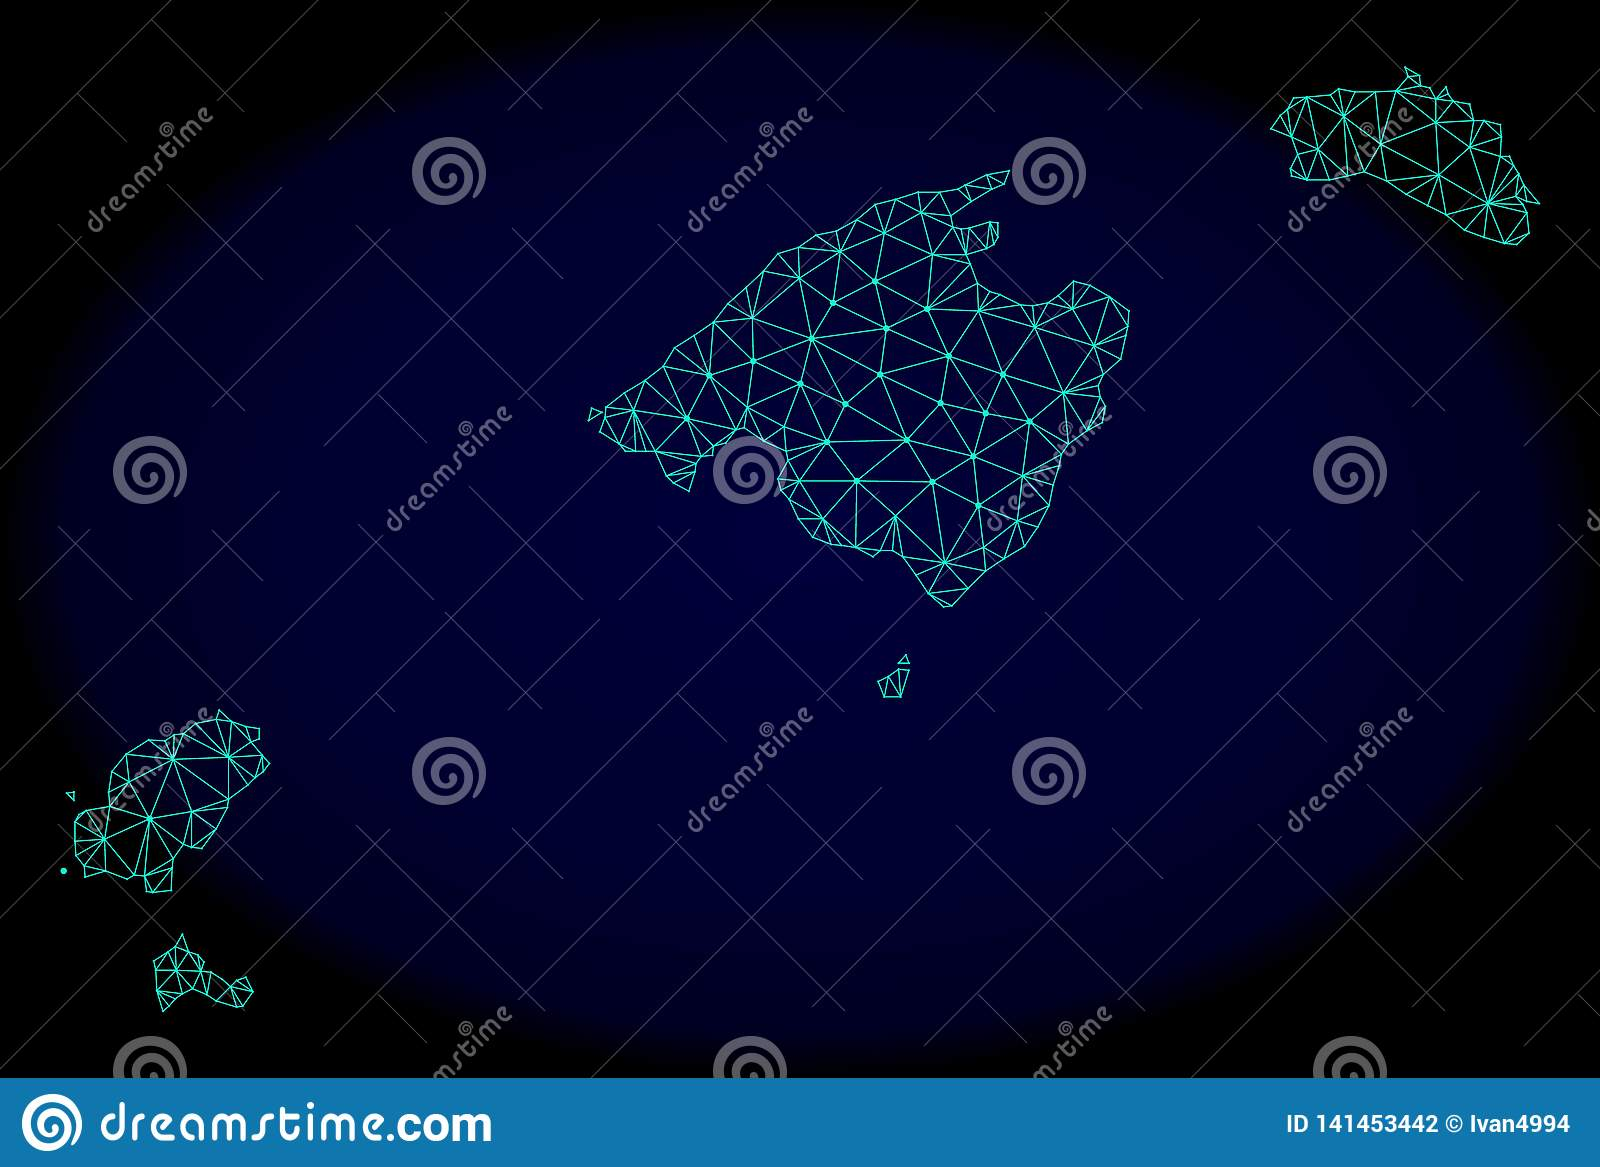 Polygonal Network Mesh Vector Abstract Map of Balearic Islands